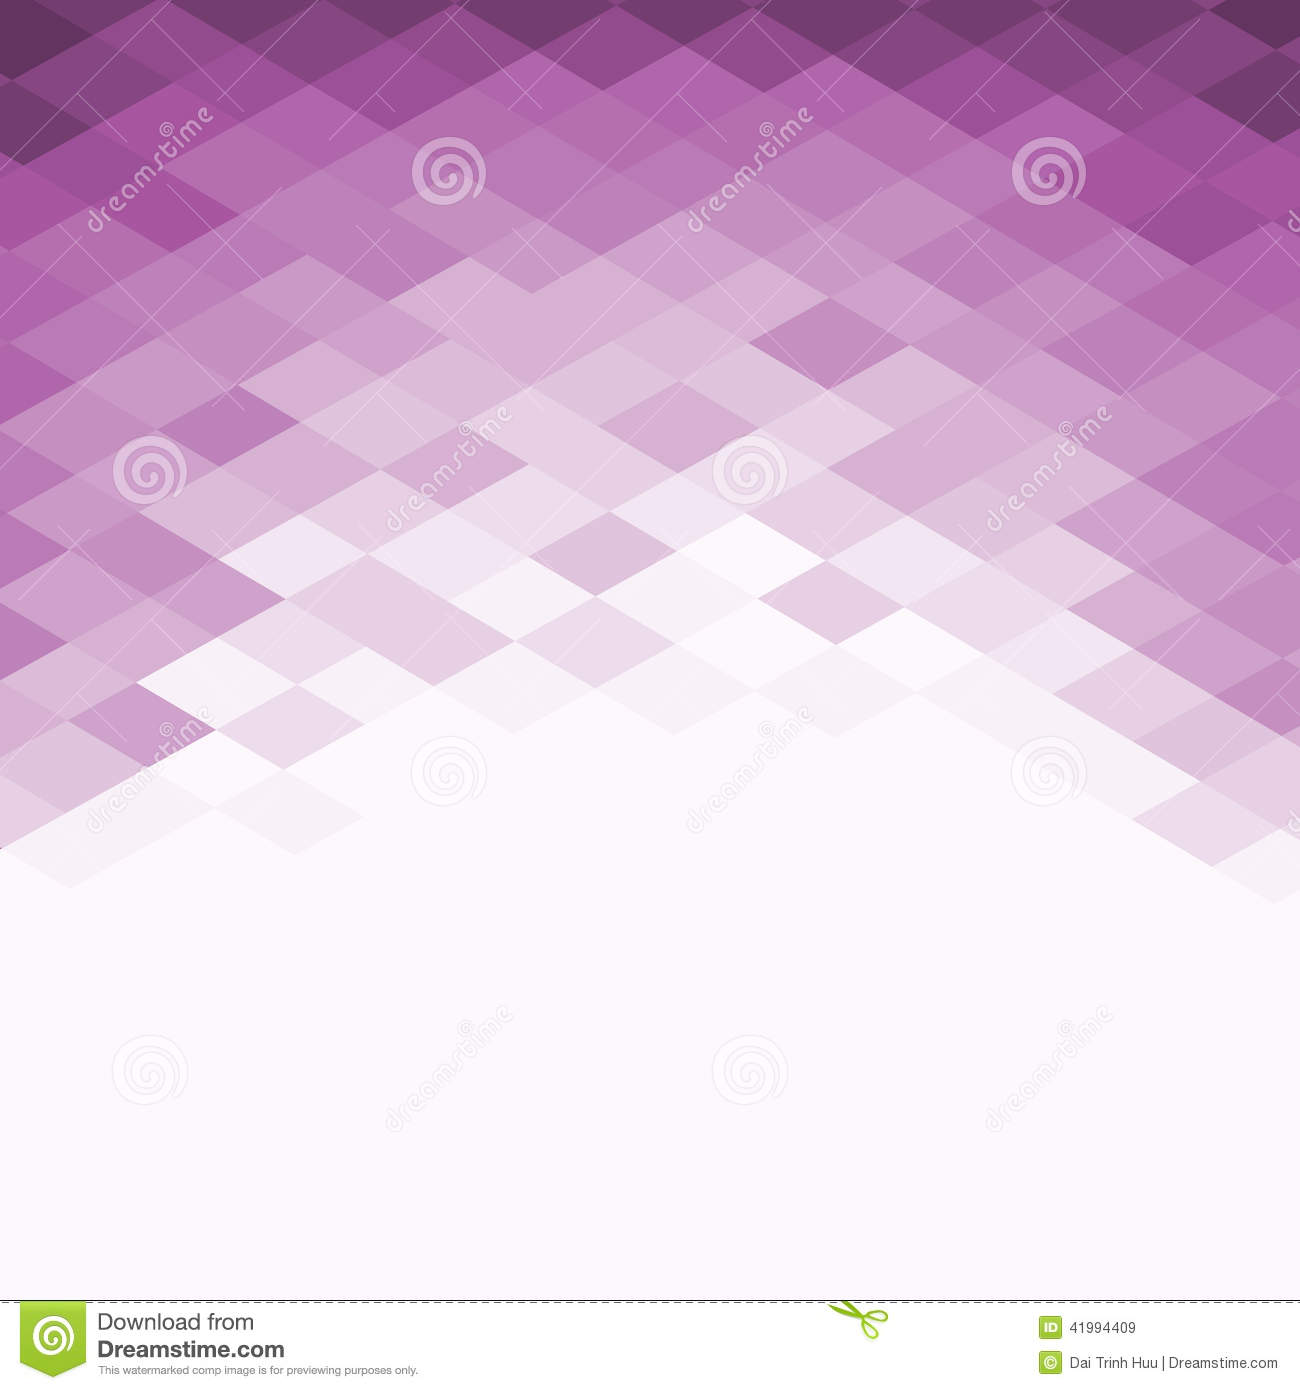 Purple Polygonal Abstract Background: Abstract Light Purple Background Clipart Stock Vector